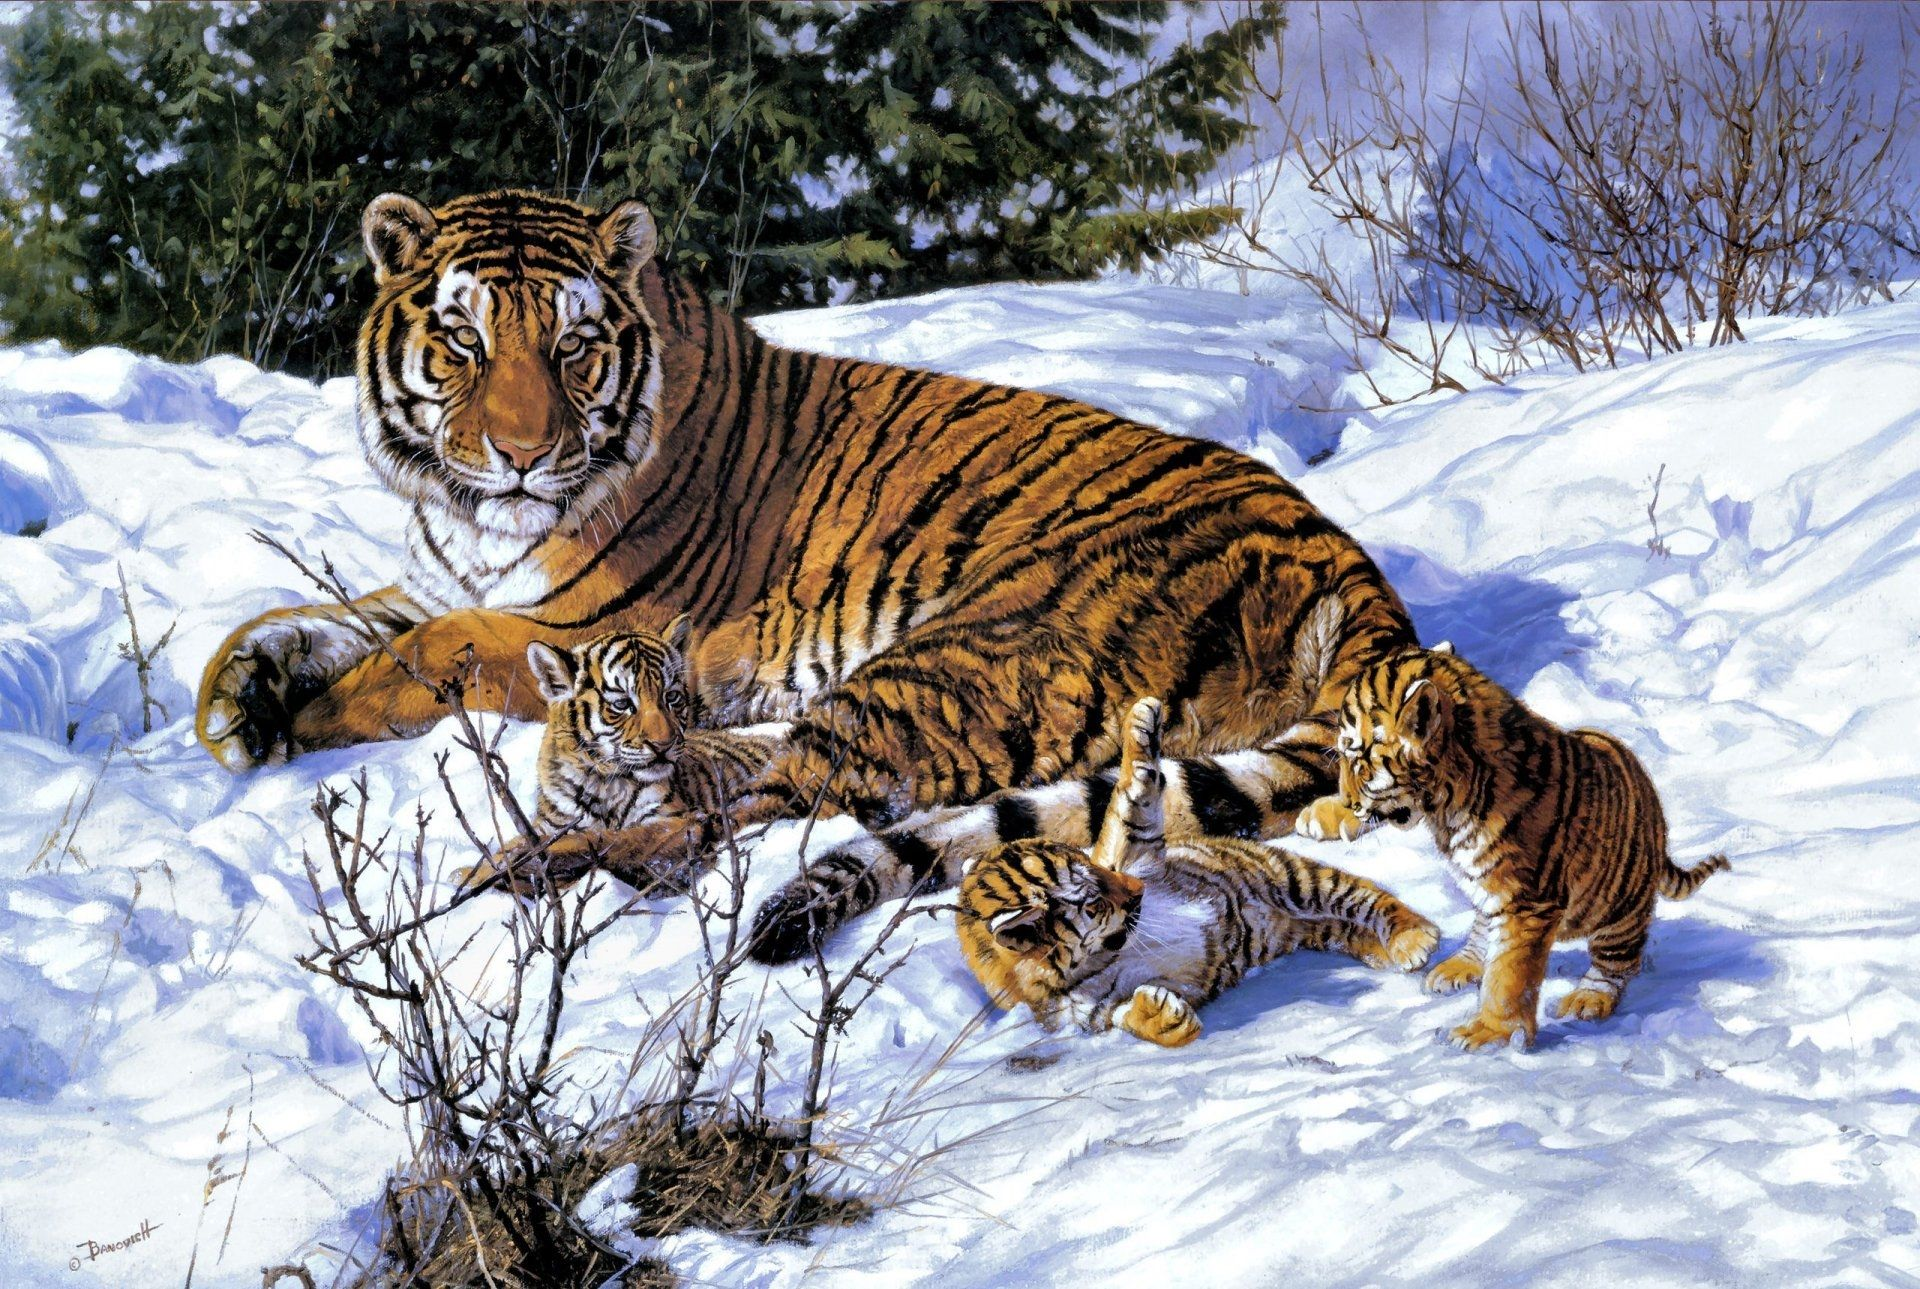 Tiger with baby Art, HD Wallpaper